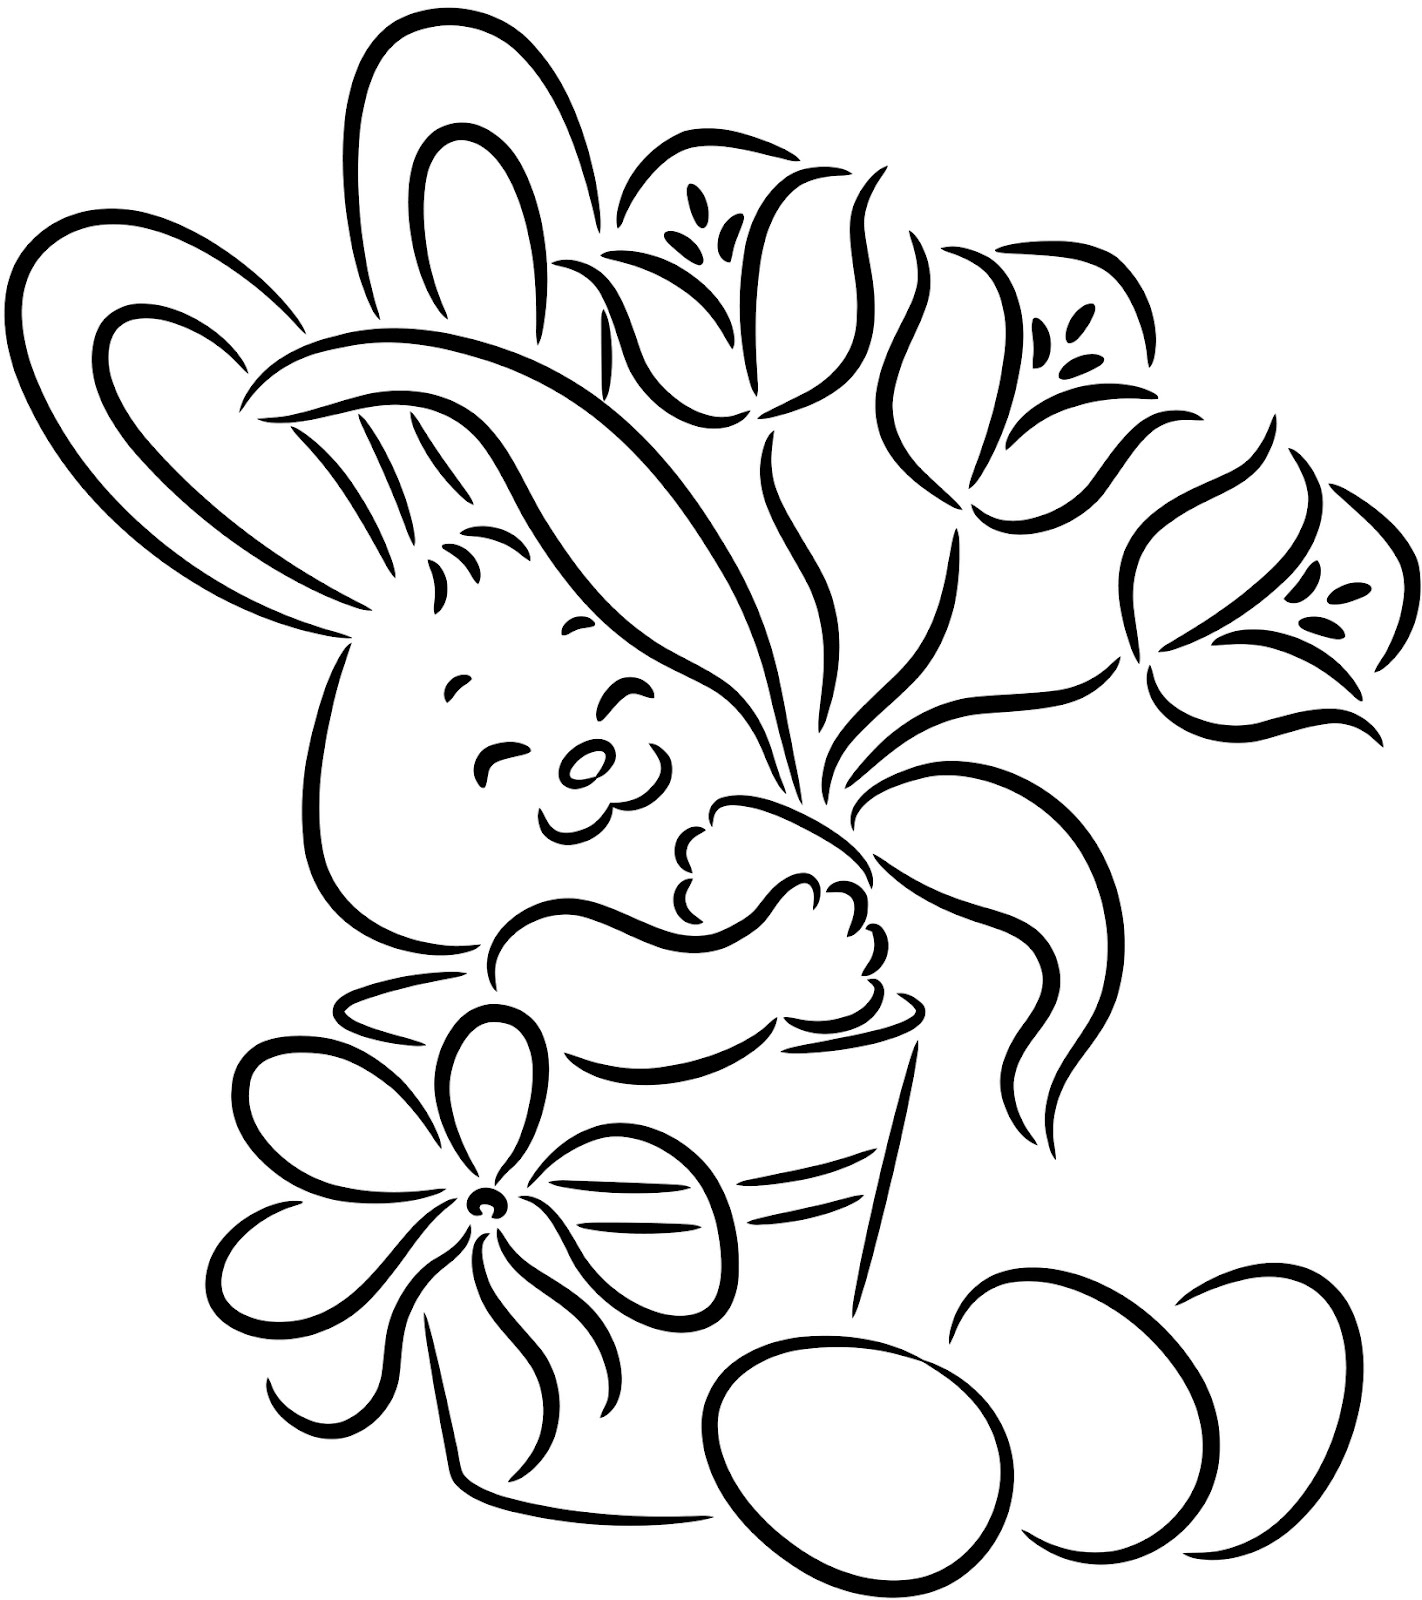 colouring pages of rabbit printable rabbit coloring pages for kids coloring page colouring pages rabbit of